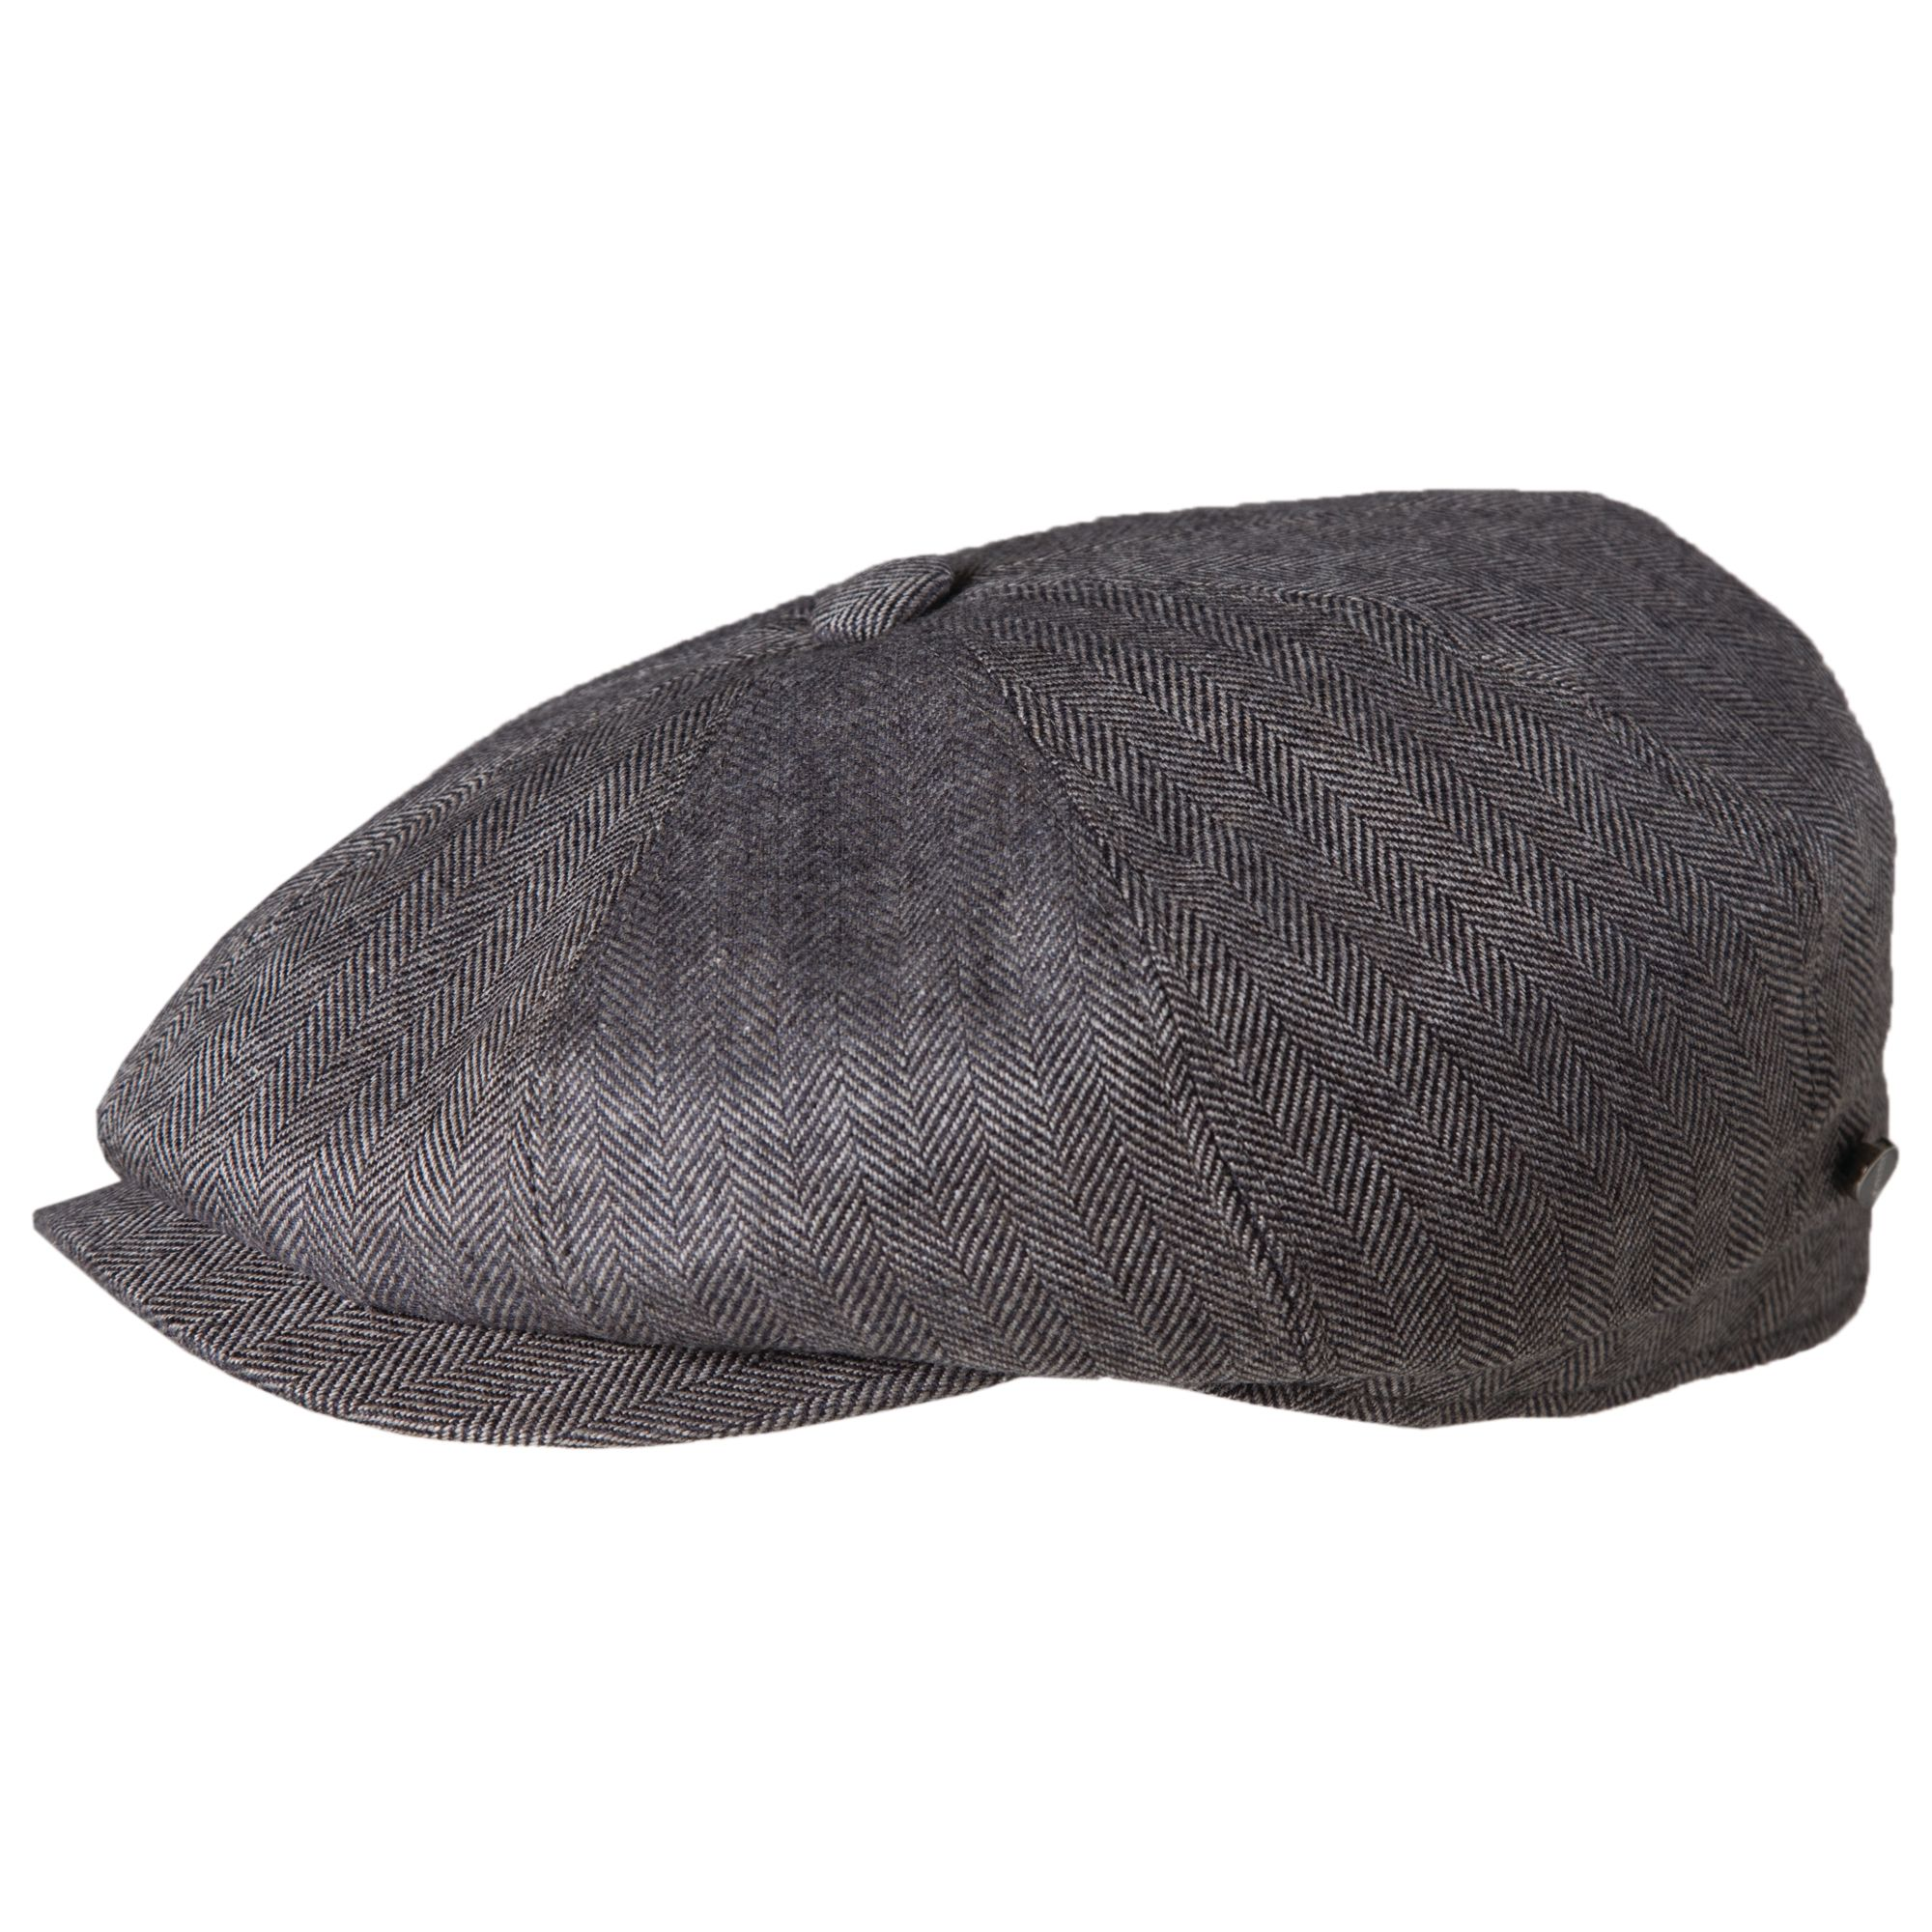 1b883ed87e7 New Stetson Hatteras Cashmere Silk Blend Newsboy Hat Cap in 2019 ...